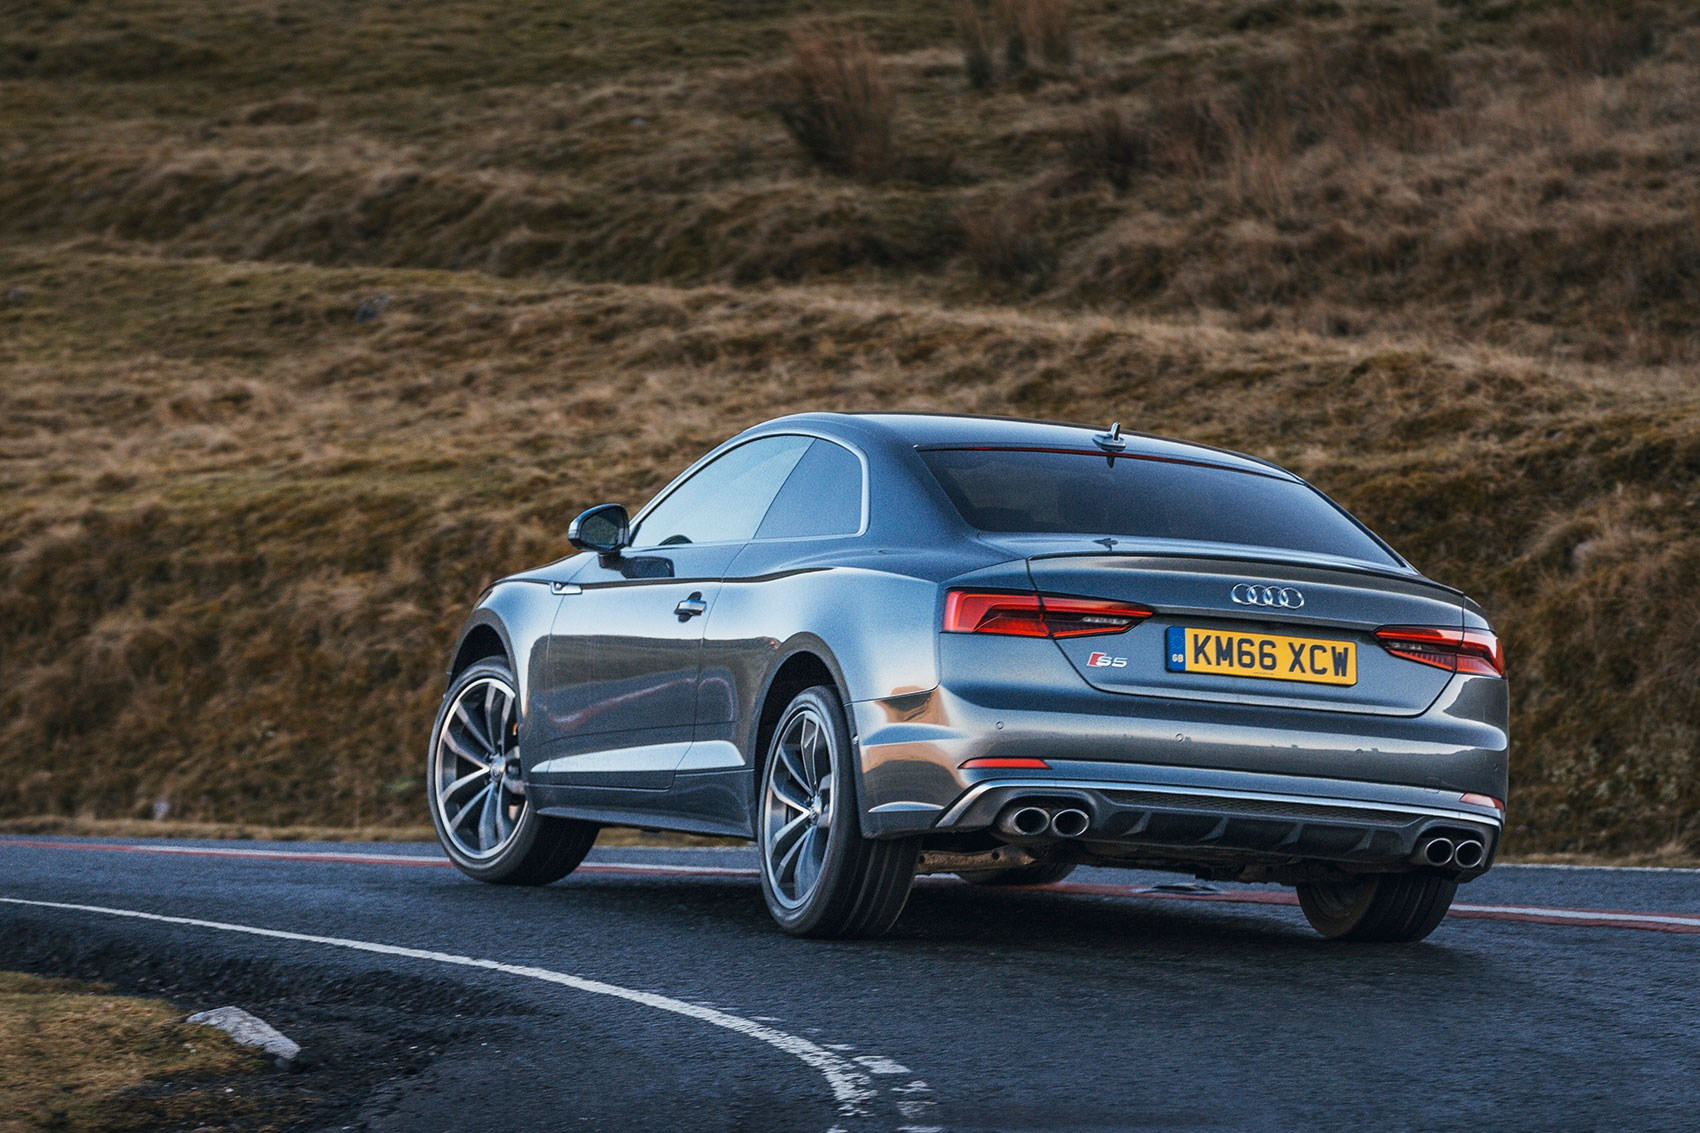 Audi s5 sportback 2017 review by car magazine -  Audi S5 Coupe Better To Drive Than Before